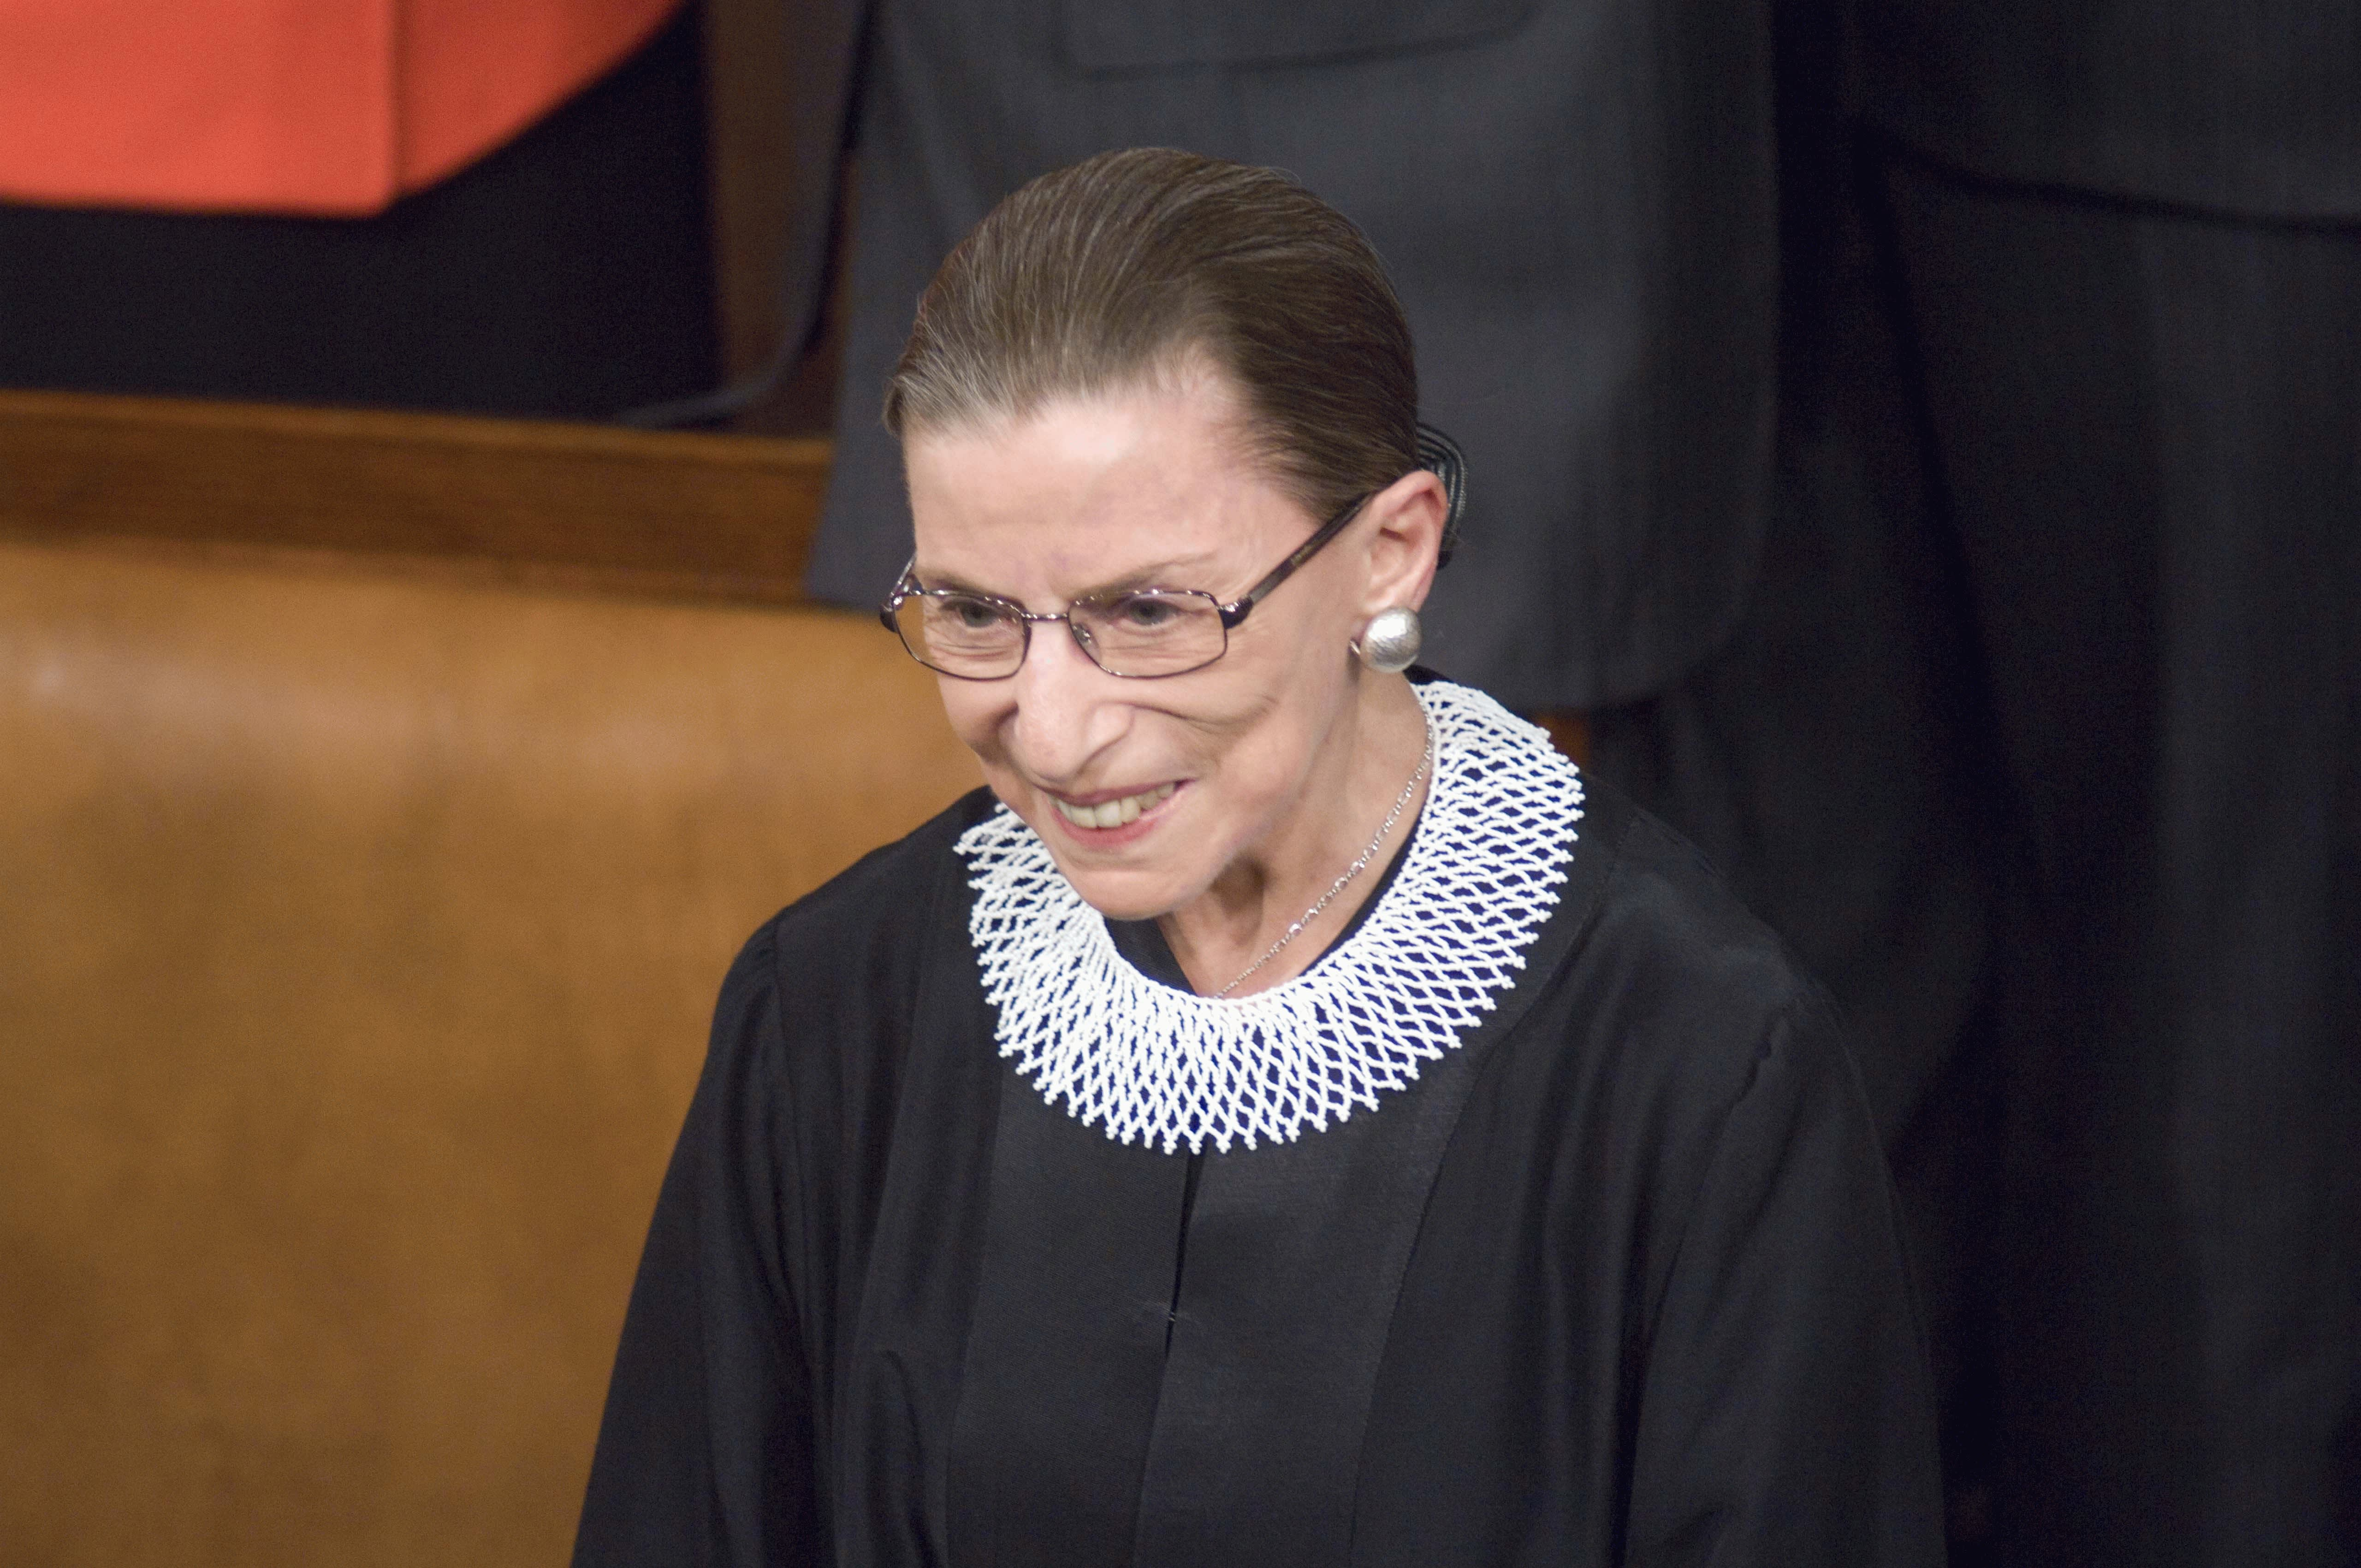 Ruth Bader Ginsburg returns to Supreme Court after missing arguments due to illness